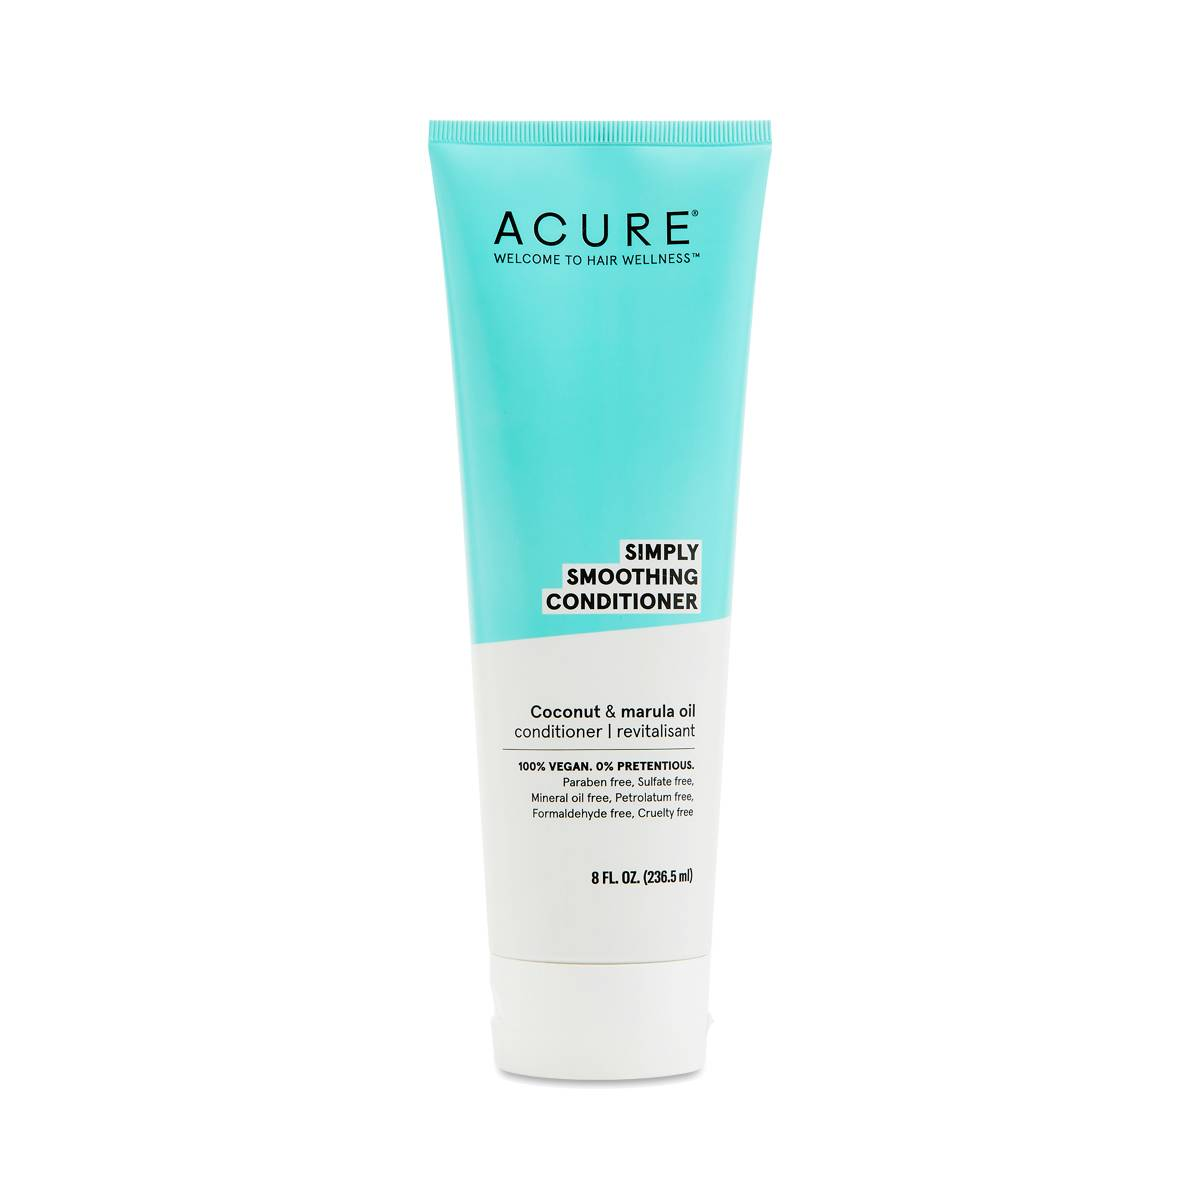 ACURE Simply Smoothing Conditioner, Coconut & Marula Oil